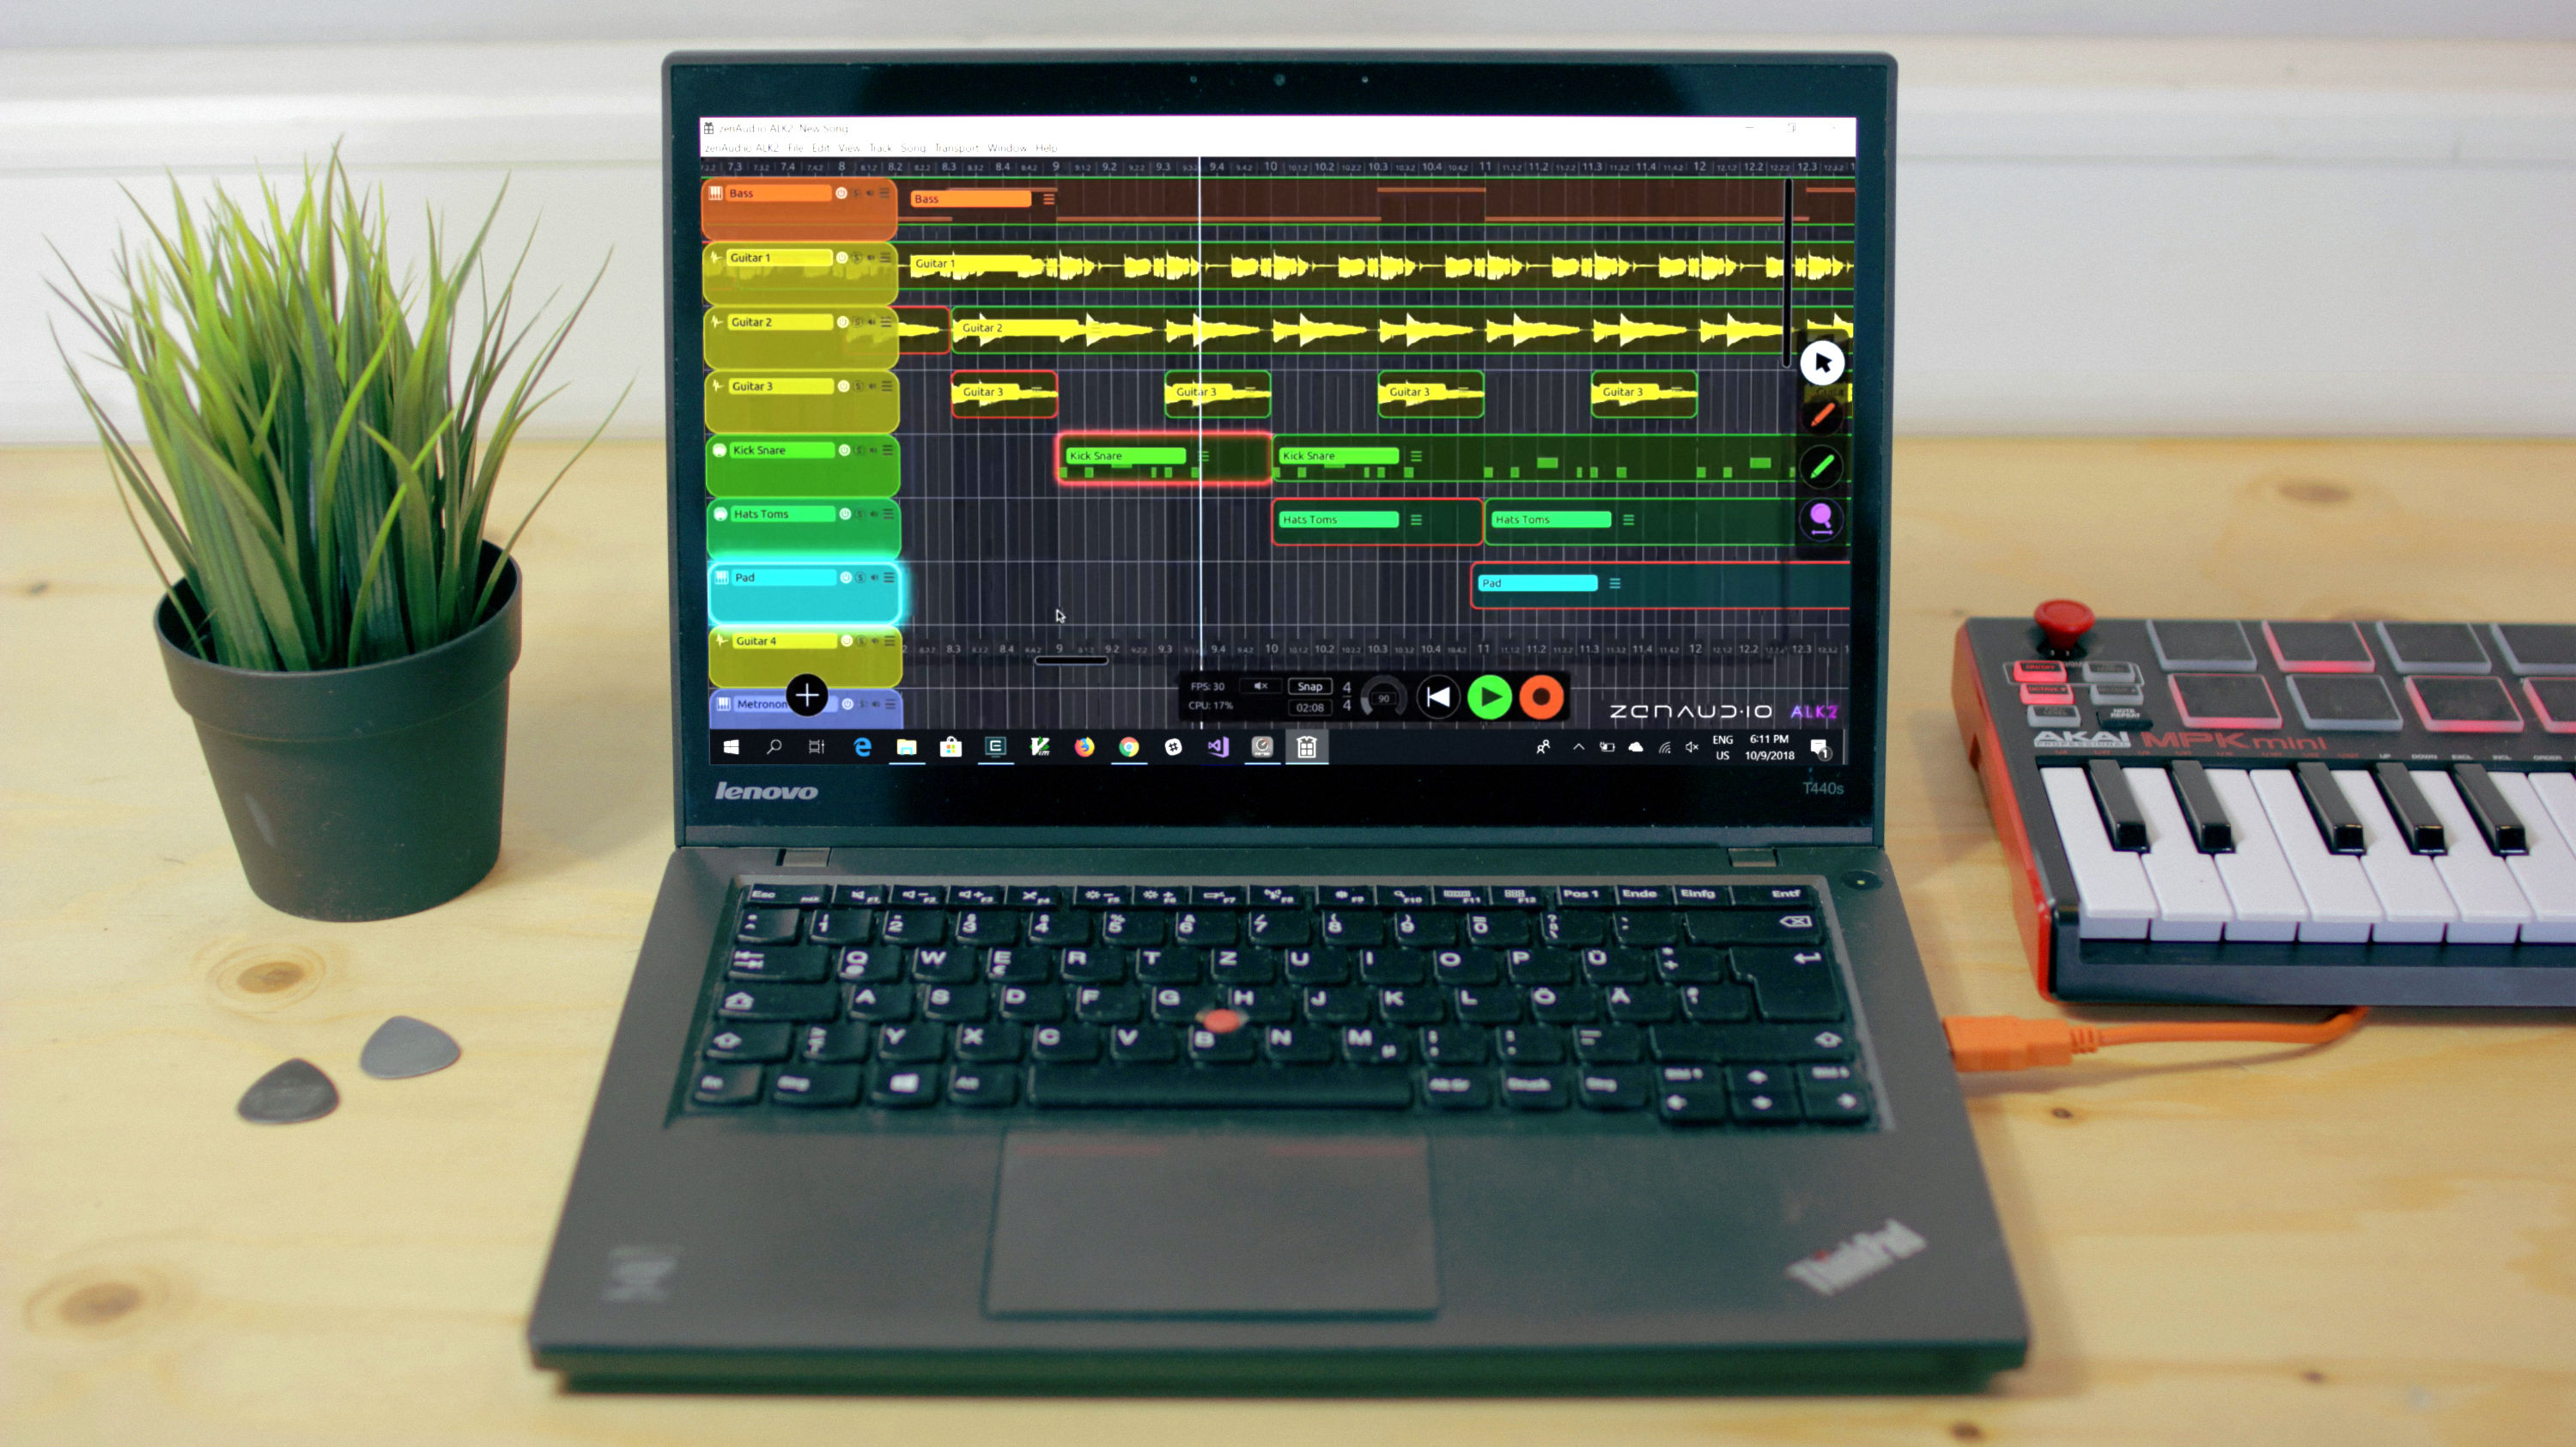 News: ZenAud.io arbeitet an Windows-Version der Looper-DAW ALK2